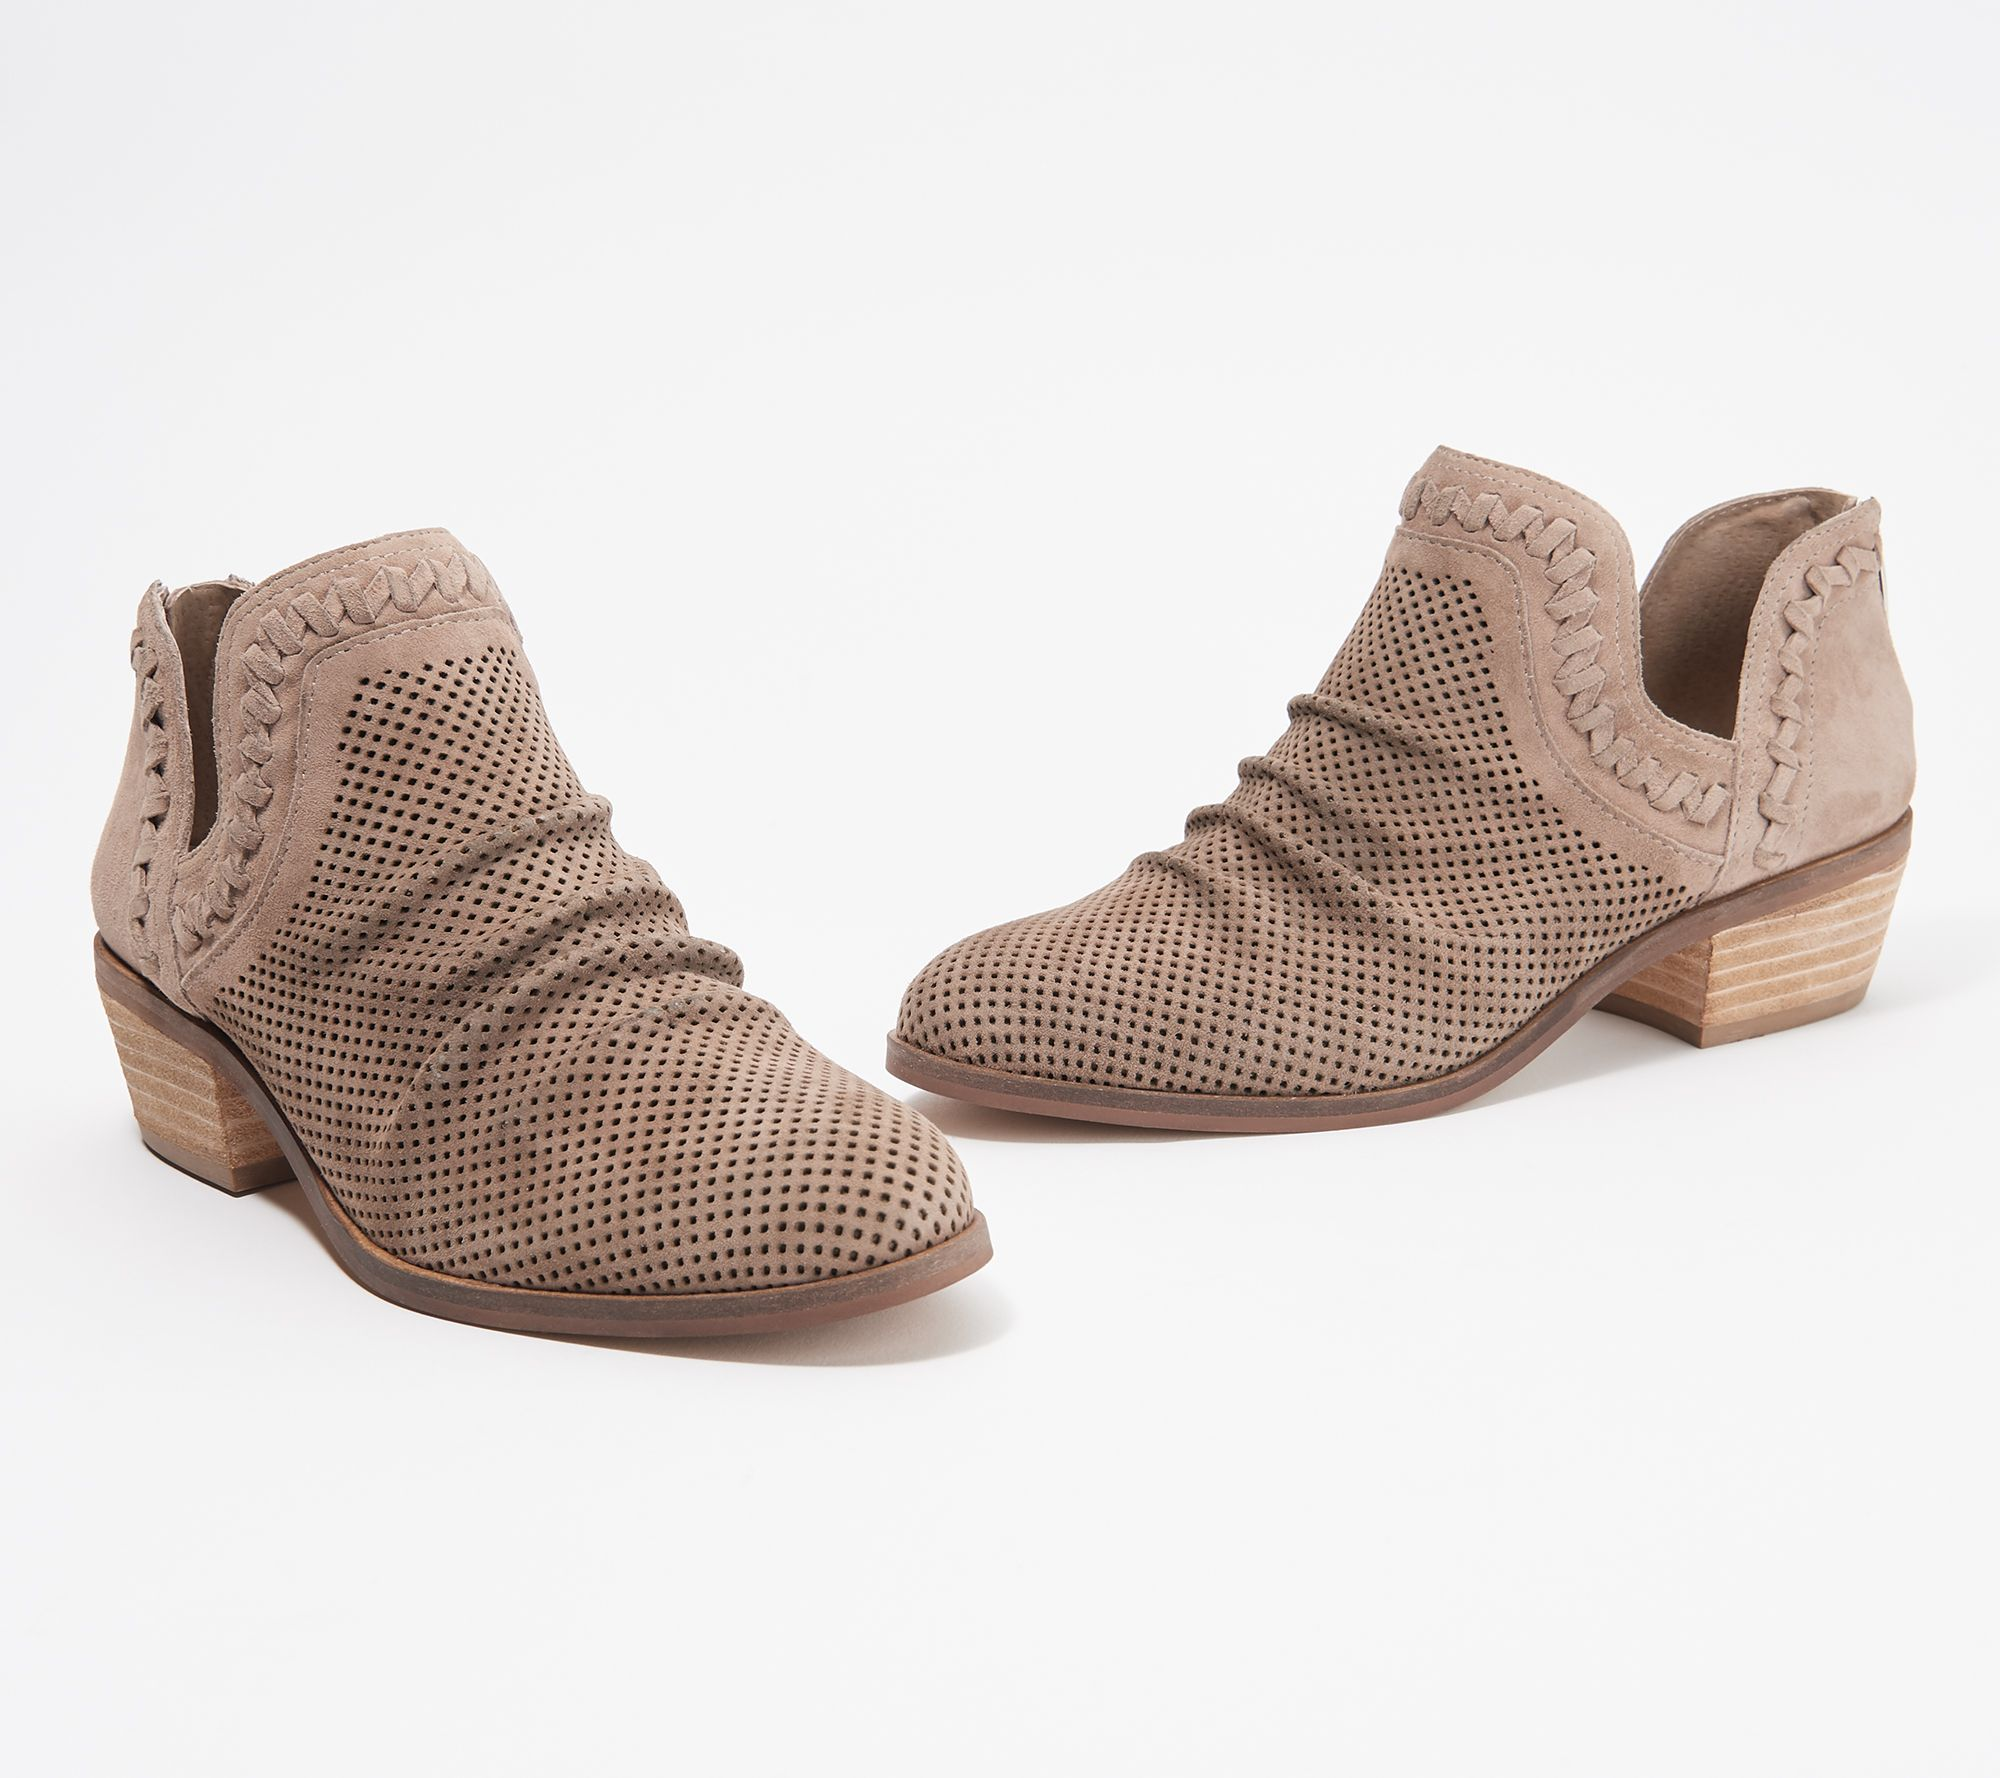 e41d66eebf0 Vince Camuto Perforated Suede Ankle Booties - Palmina — QVC.com